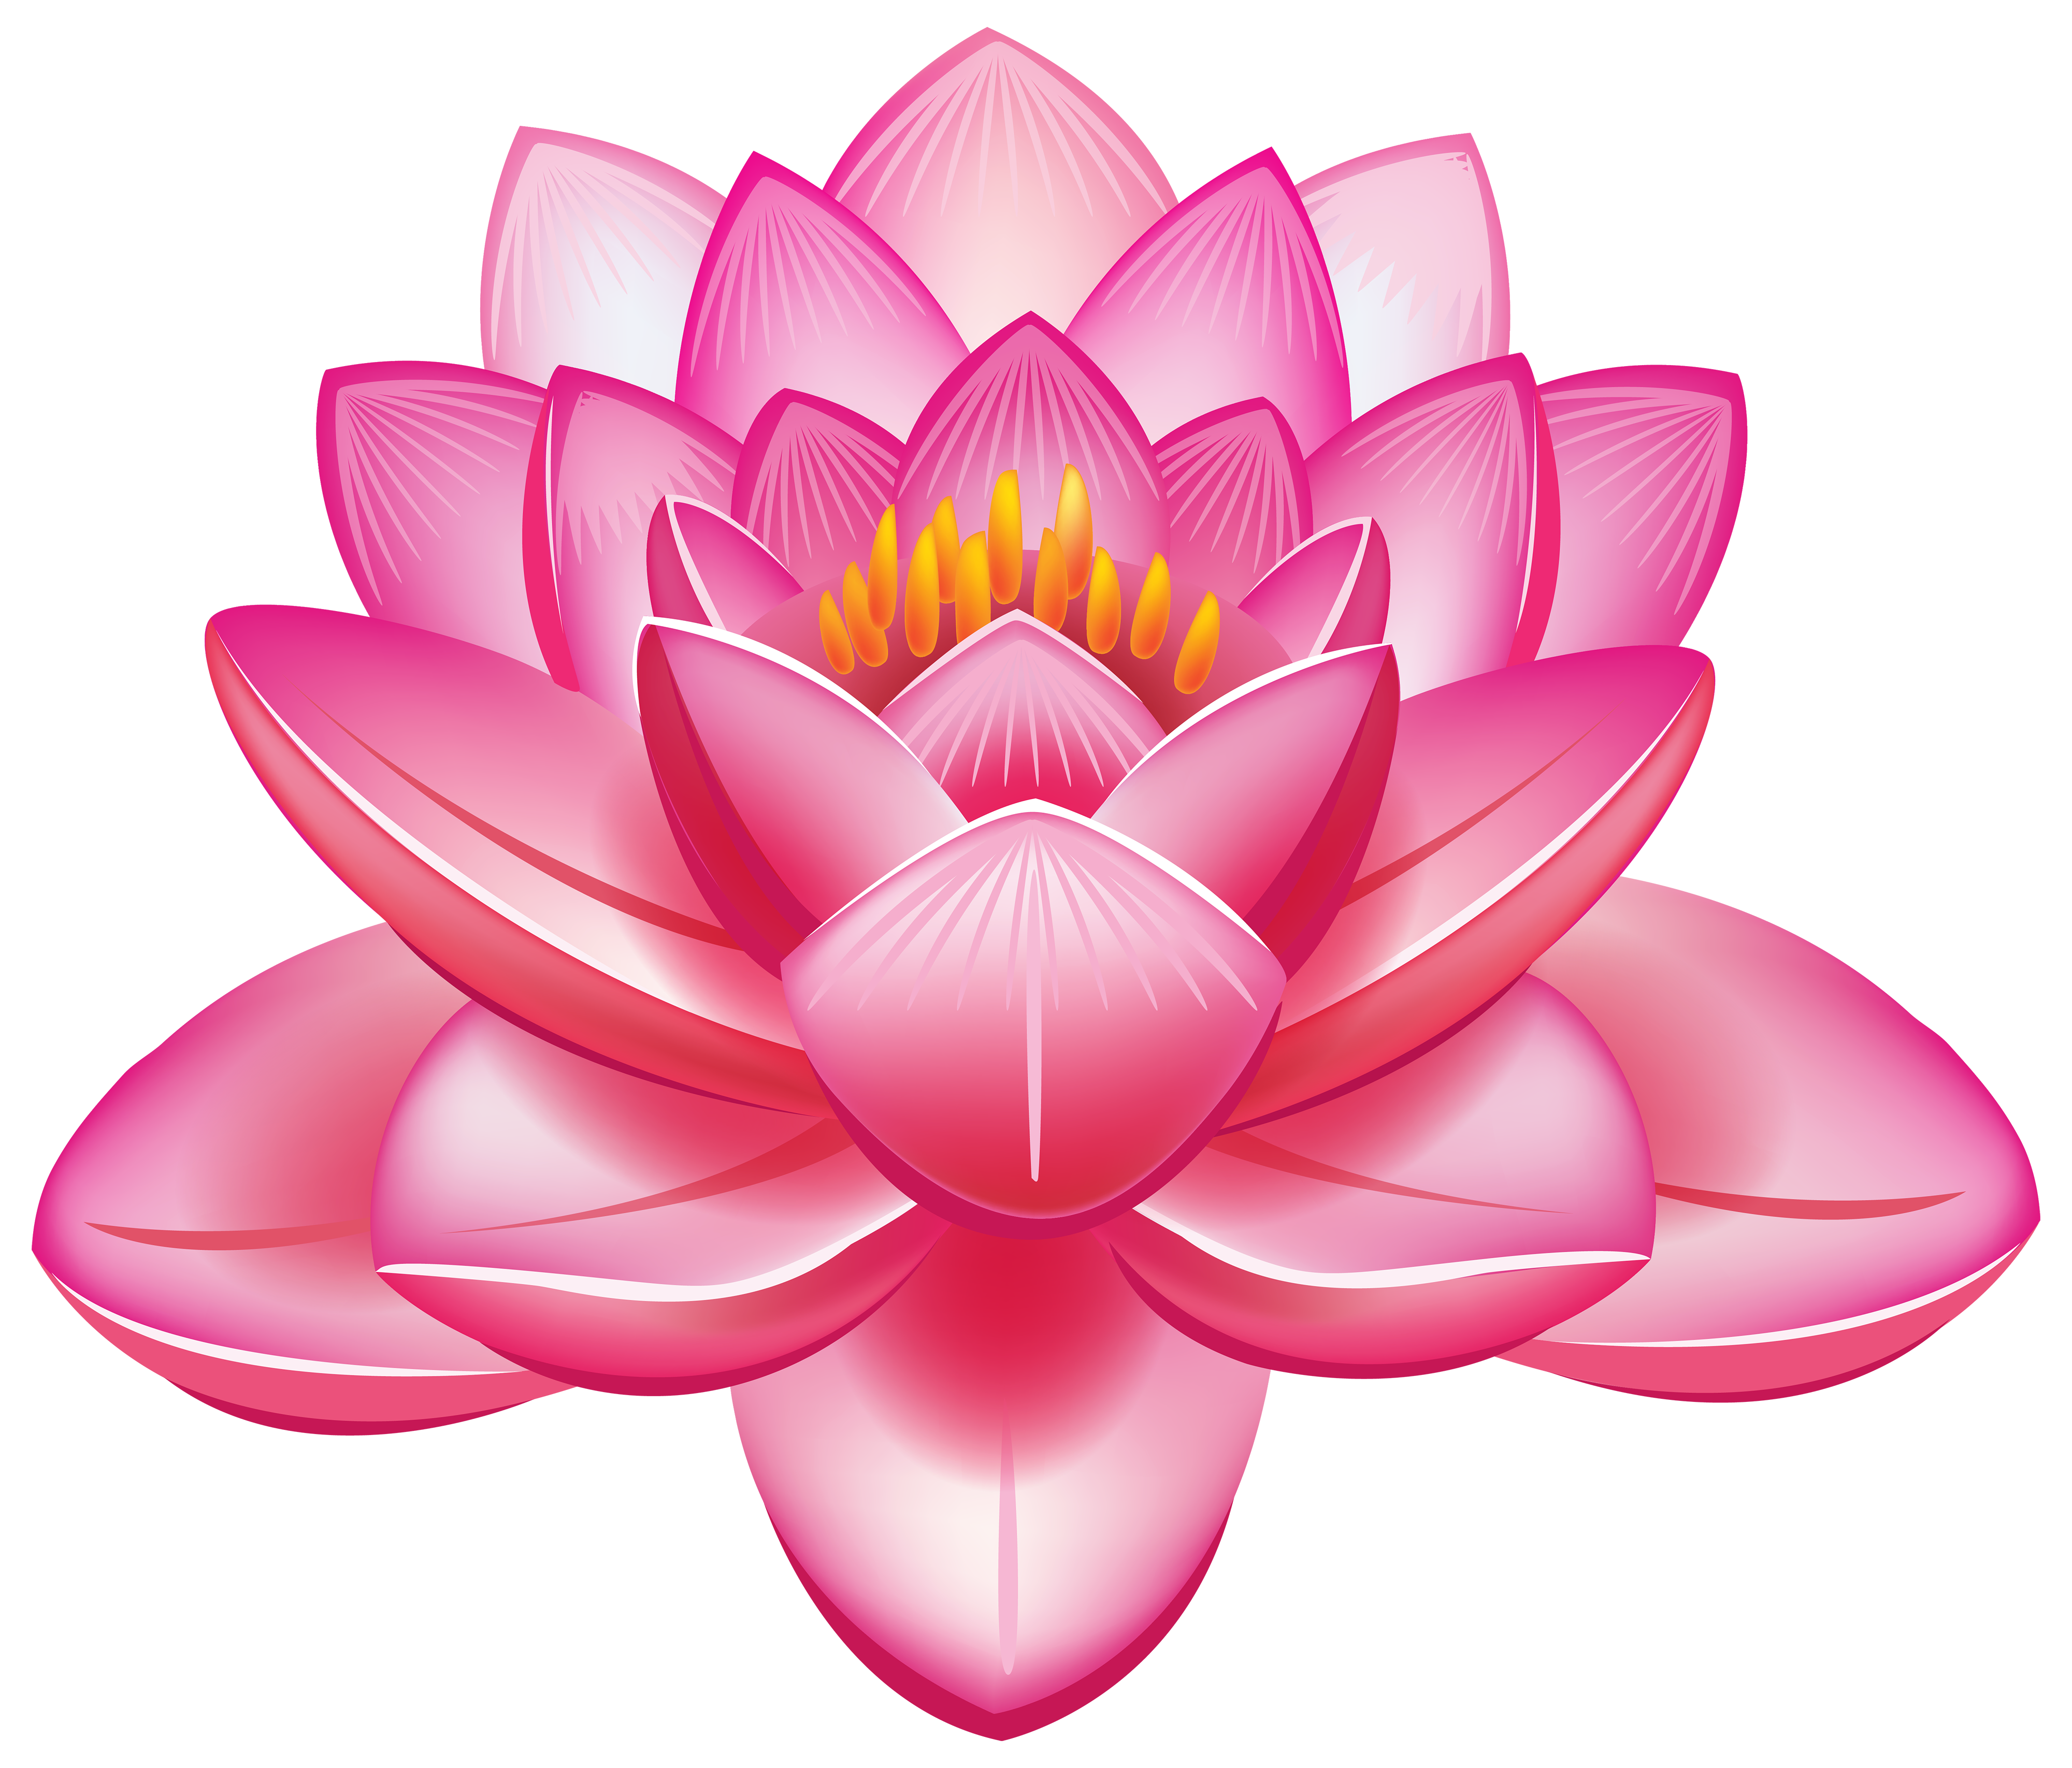 Lotus flower clipart free clipart stock Lotus Flower PNG Clipart - Best WEB Clipart clipart stock